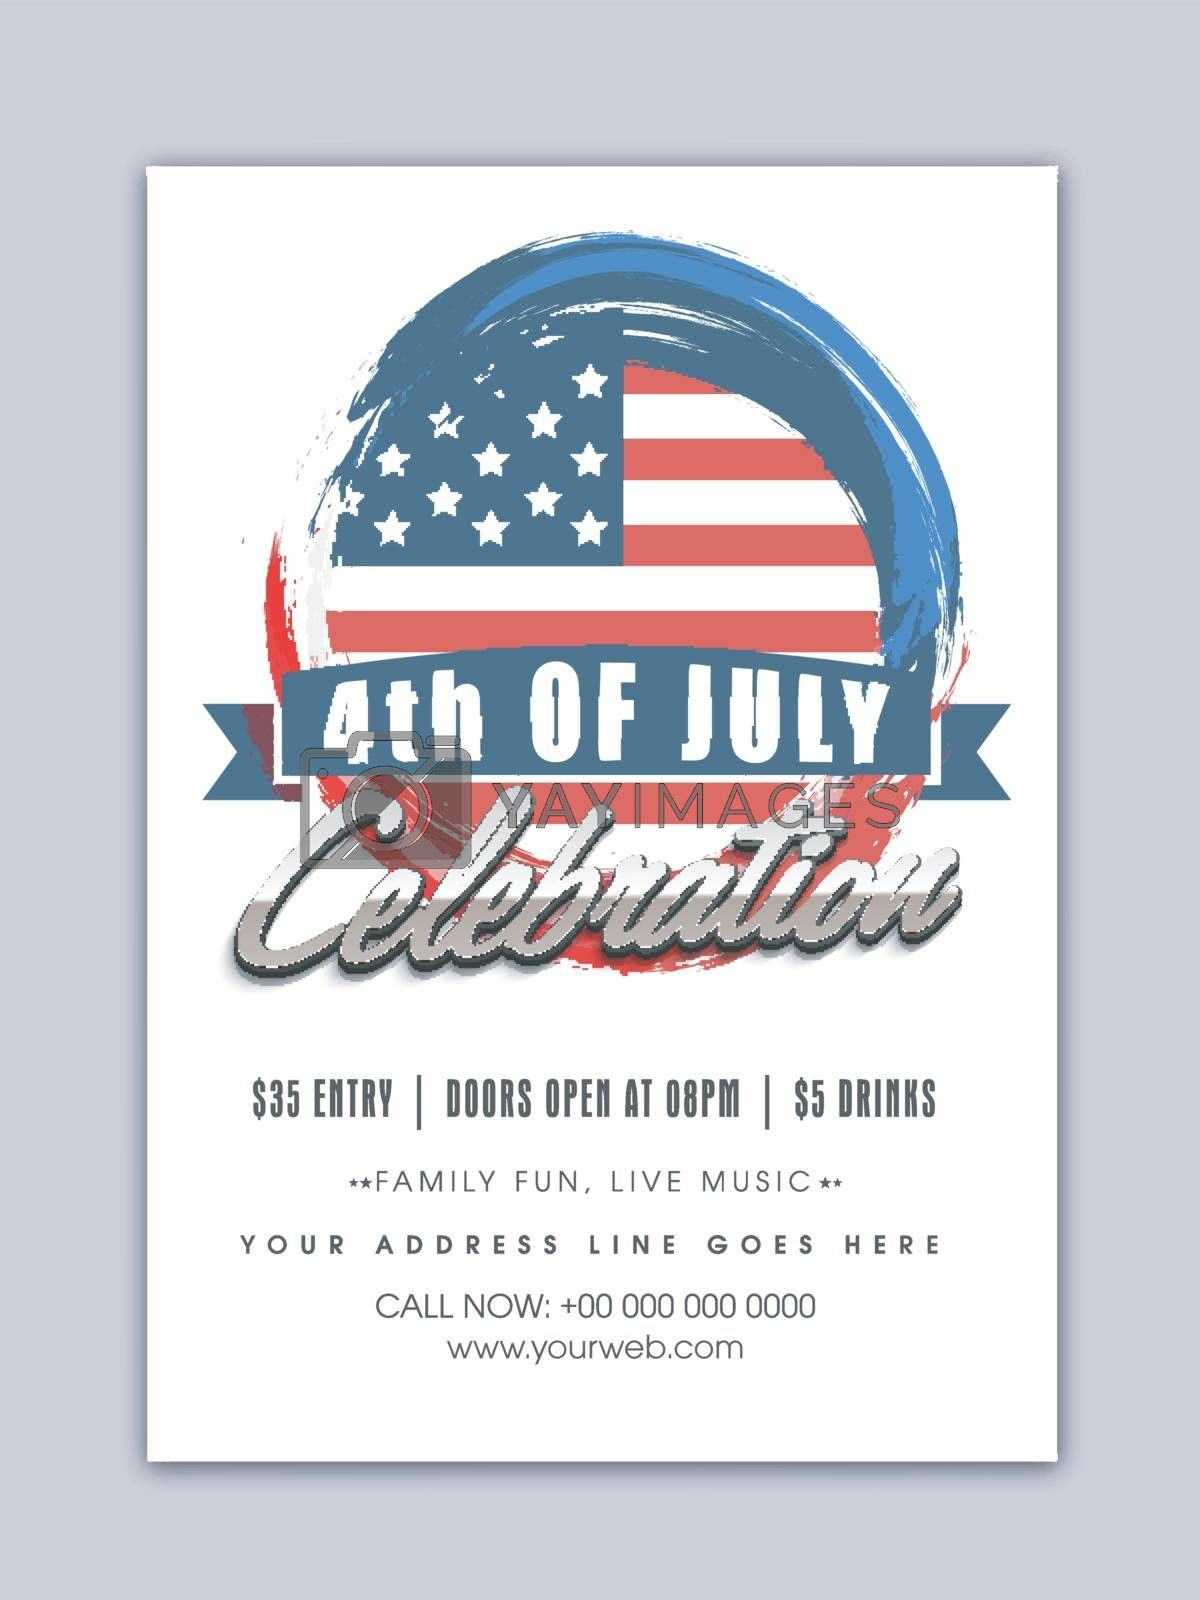 Template, Banner or Flyer design for 4th of July, American Independence Day celebration.